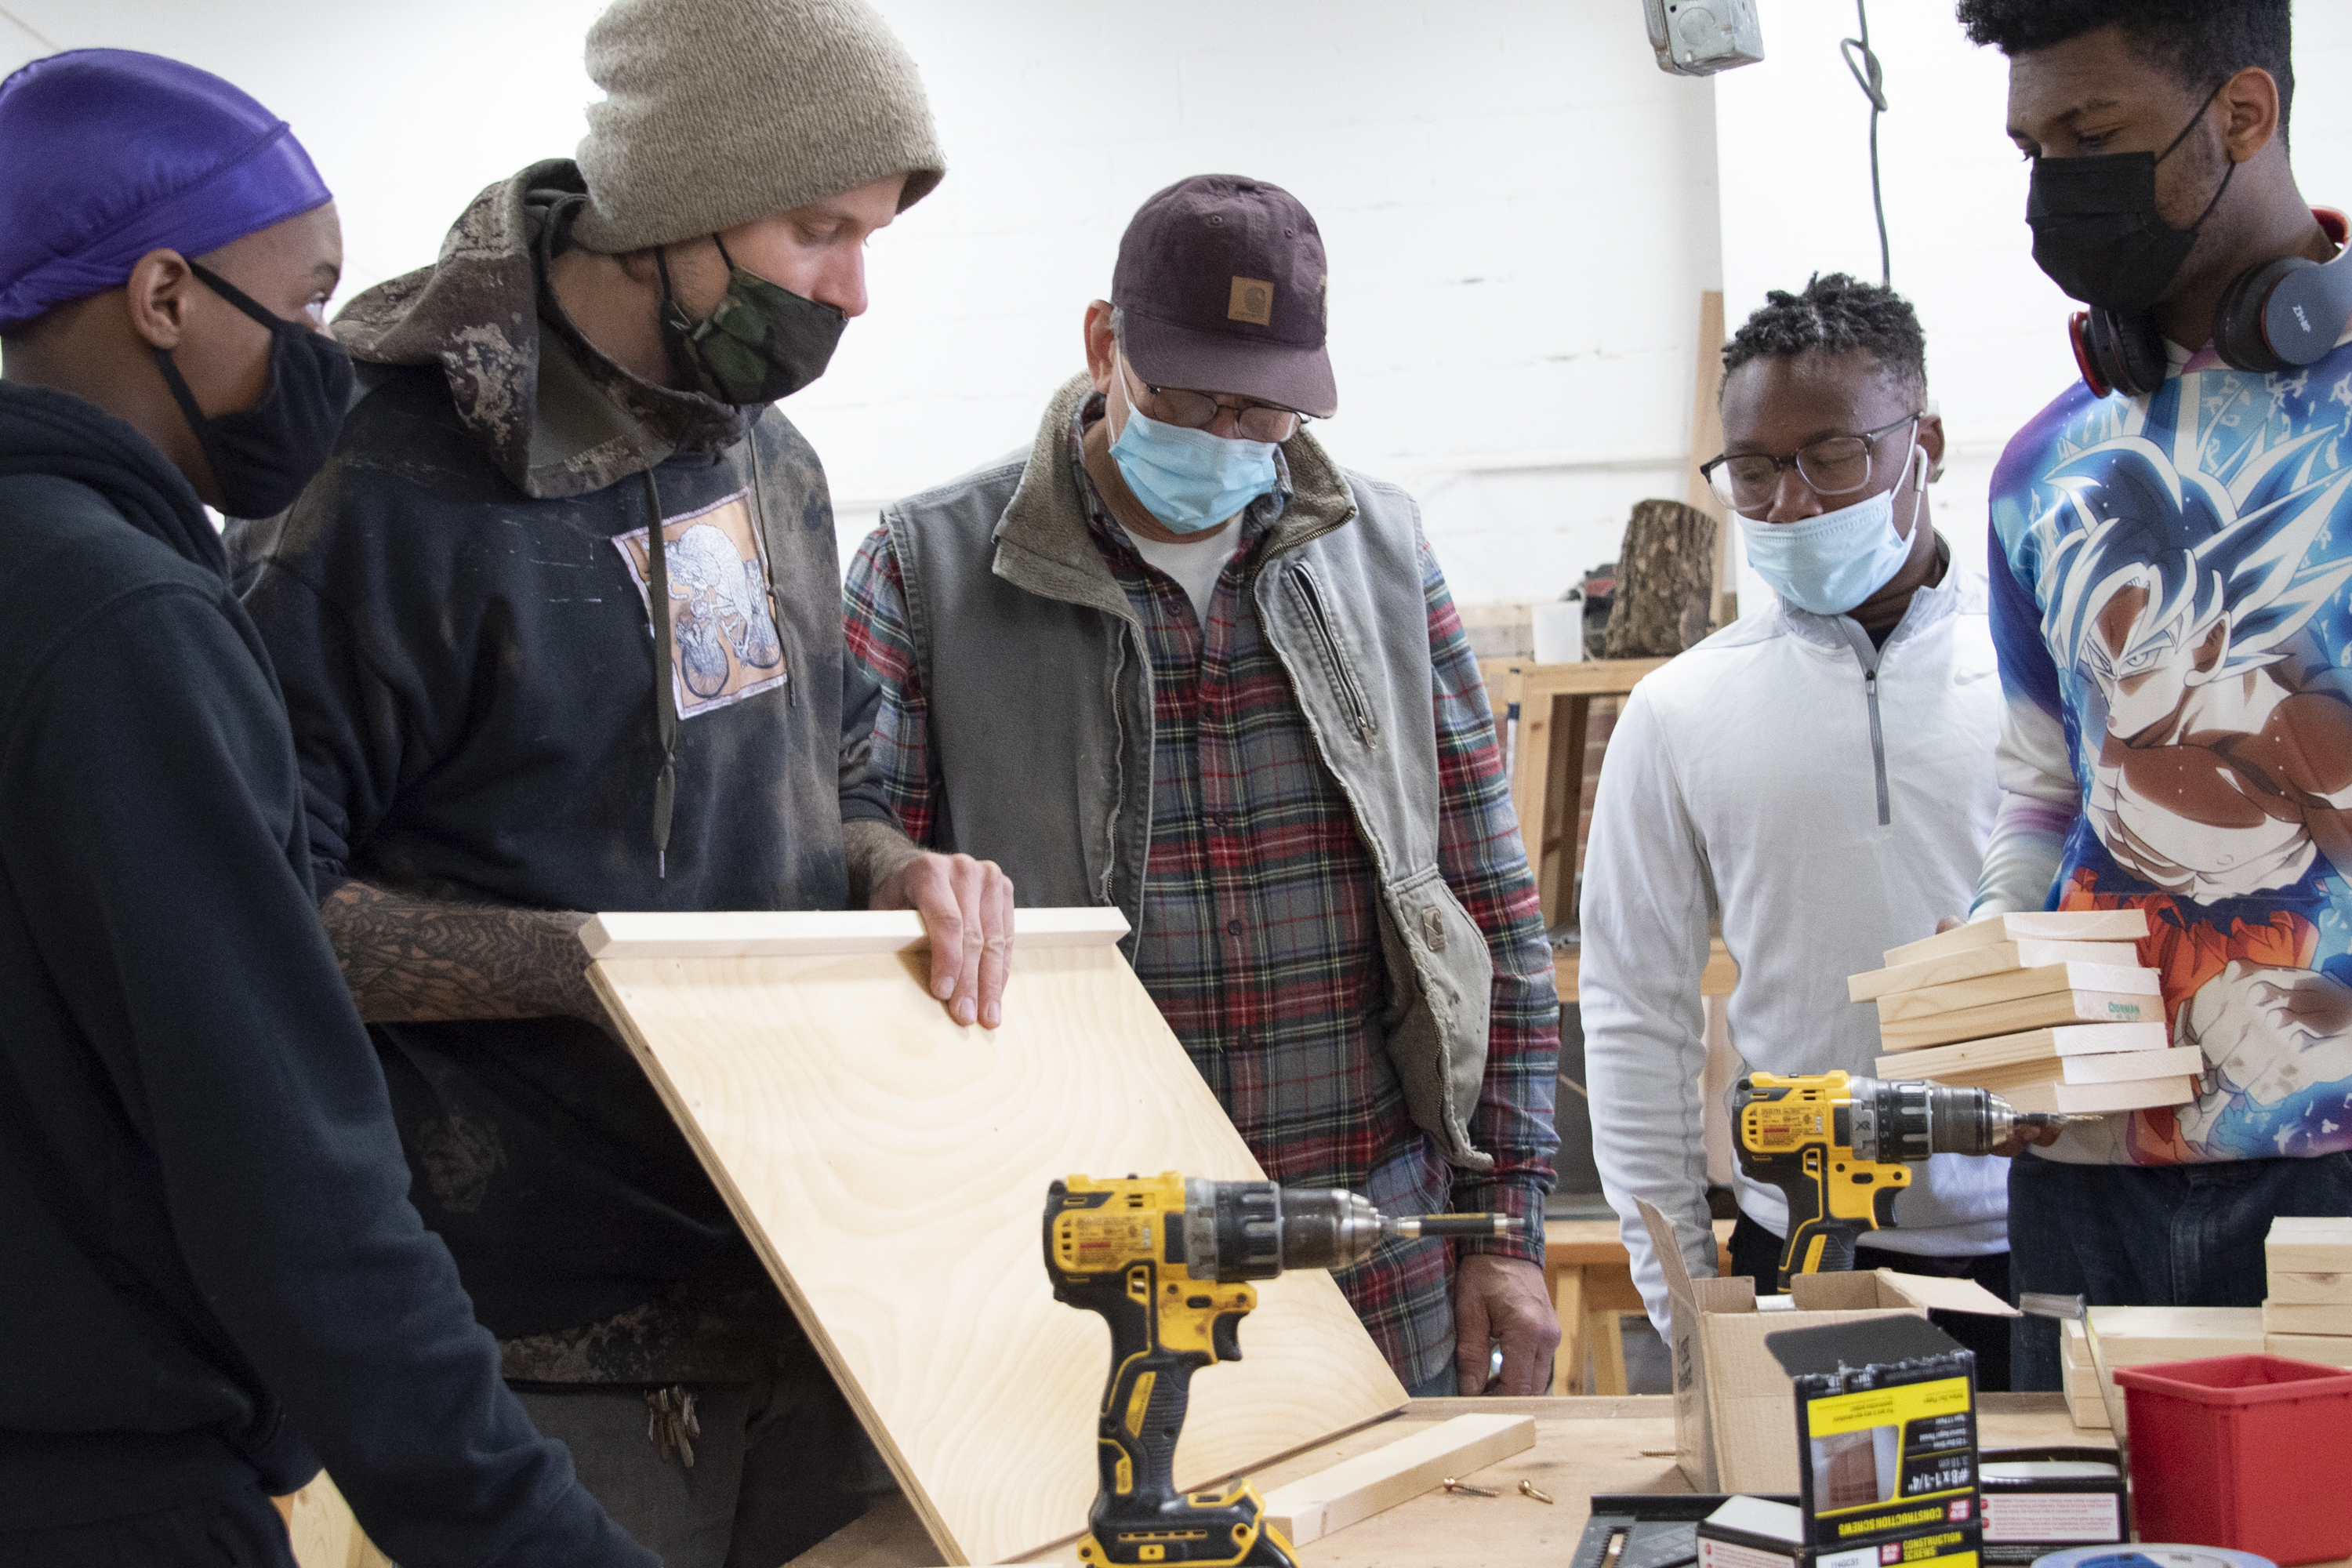 Students and adults work on building desks for remote learners